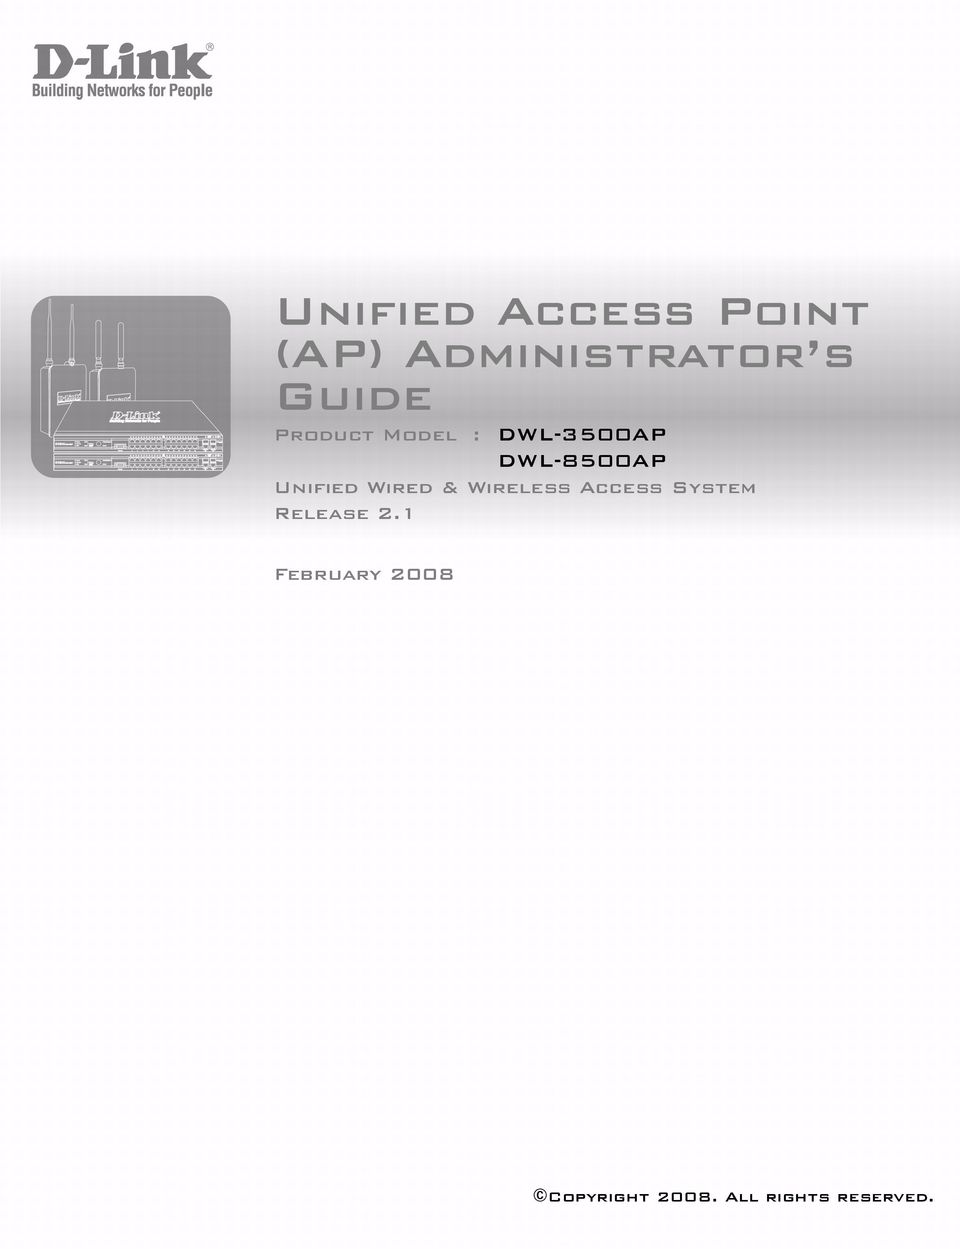 Unified Wired & Wireless Access System Release